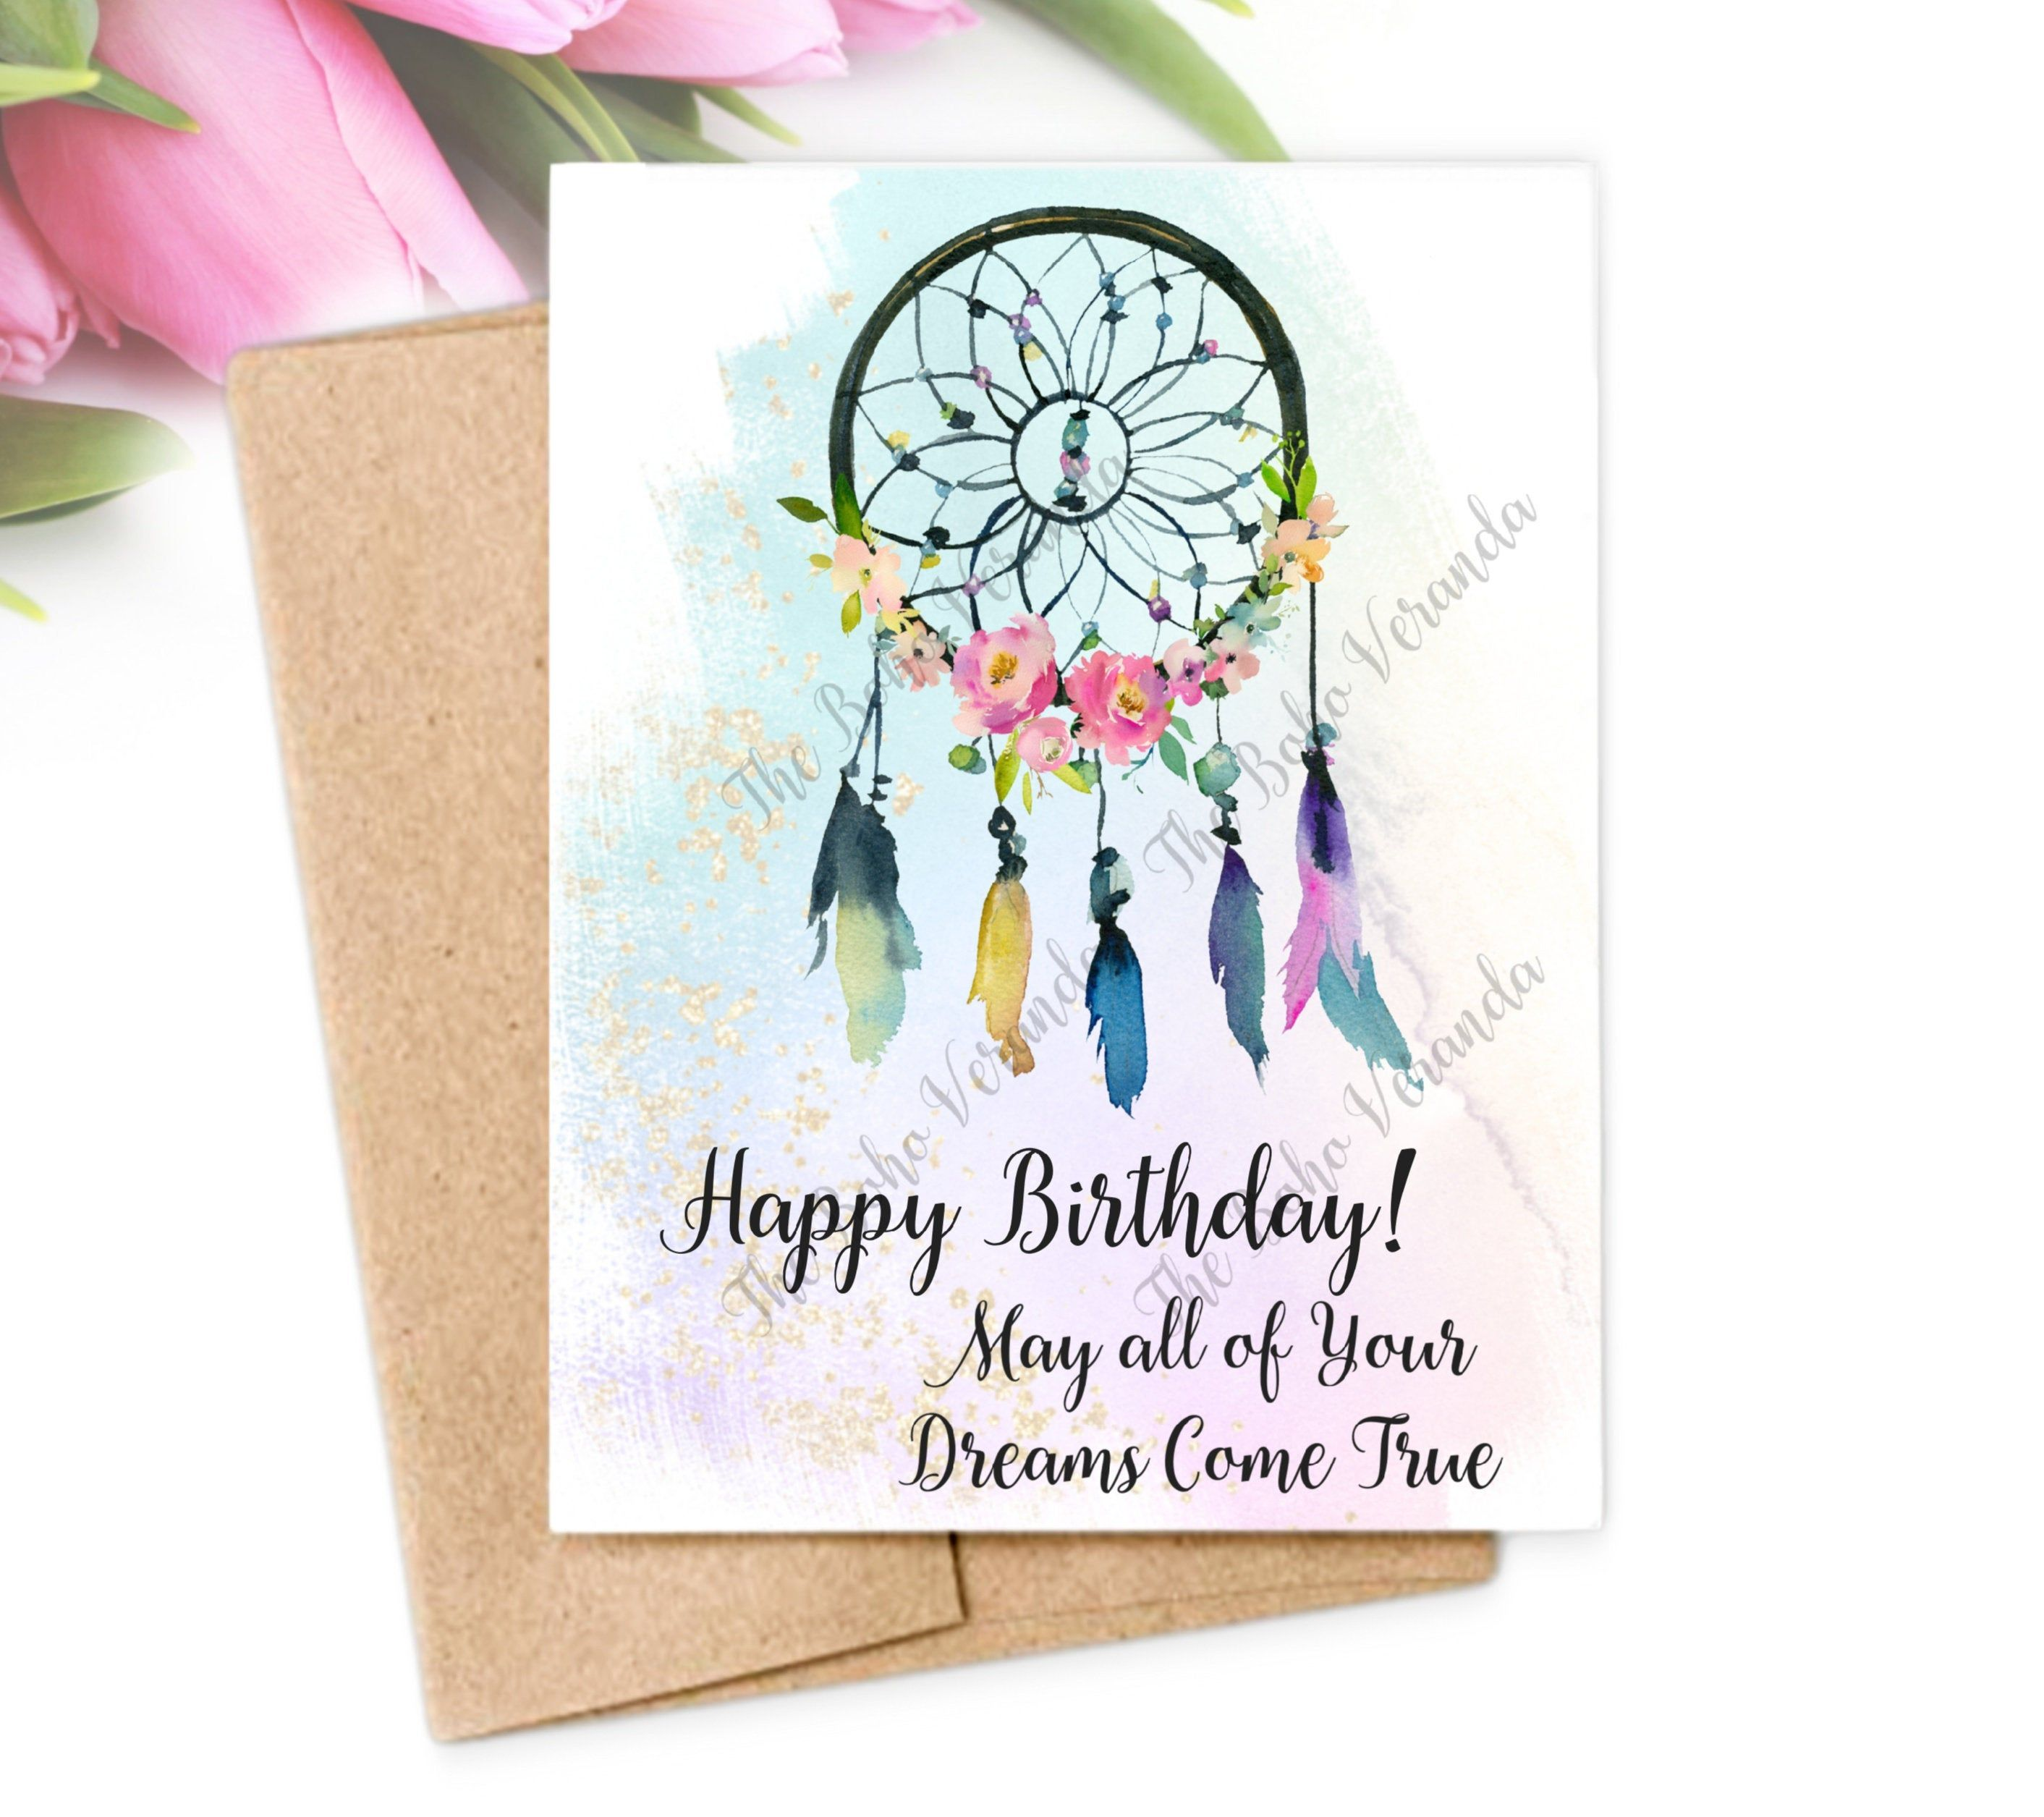 Birthday Card Printable Card Instant Download Boho Etsy In 2021 Birthday Card Printable Printable Cards Birthday Cards